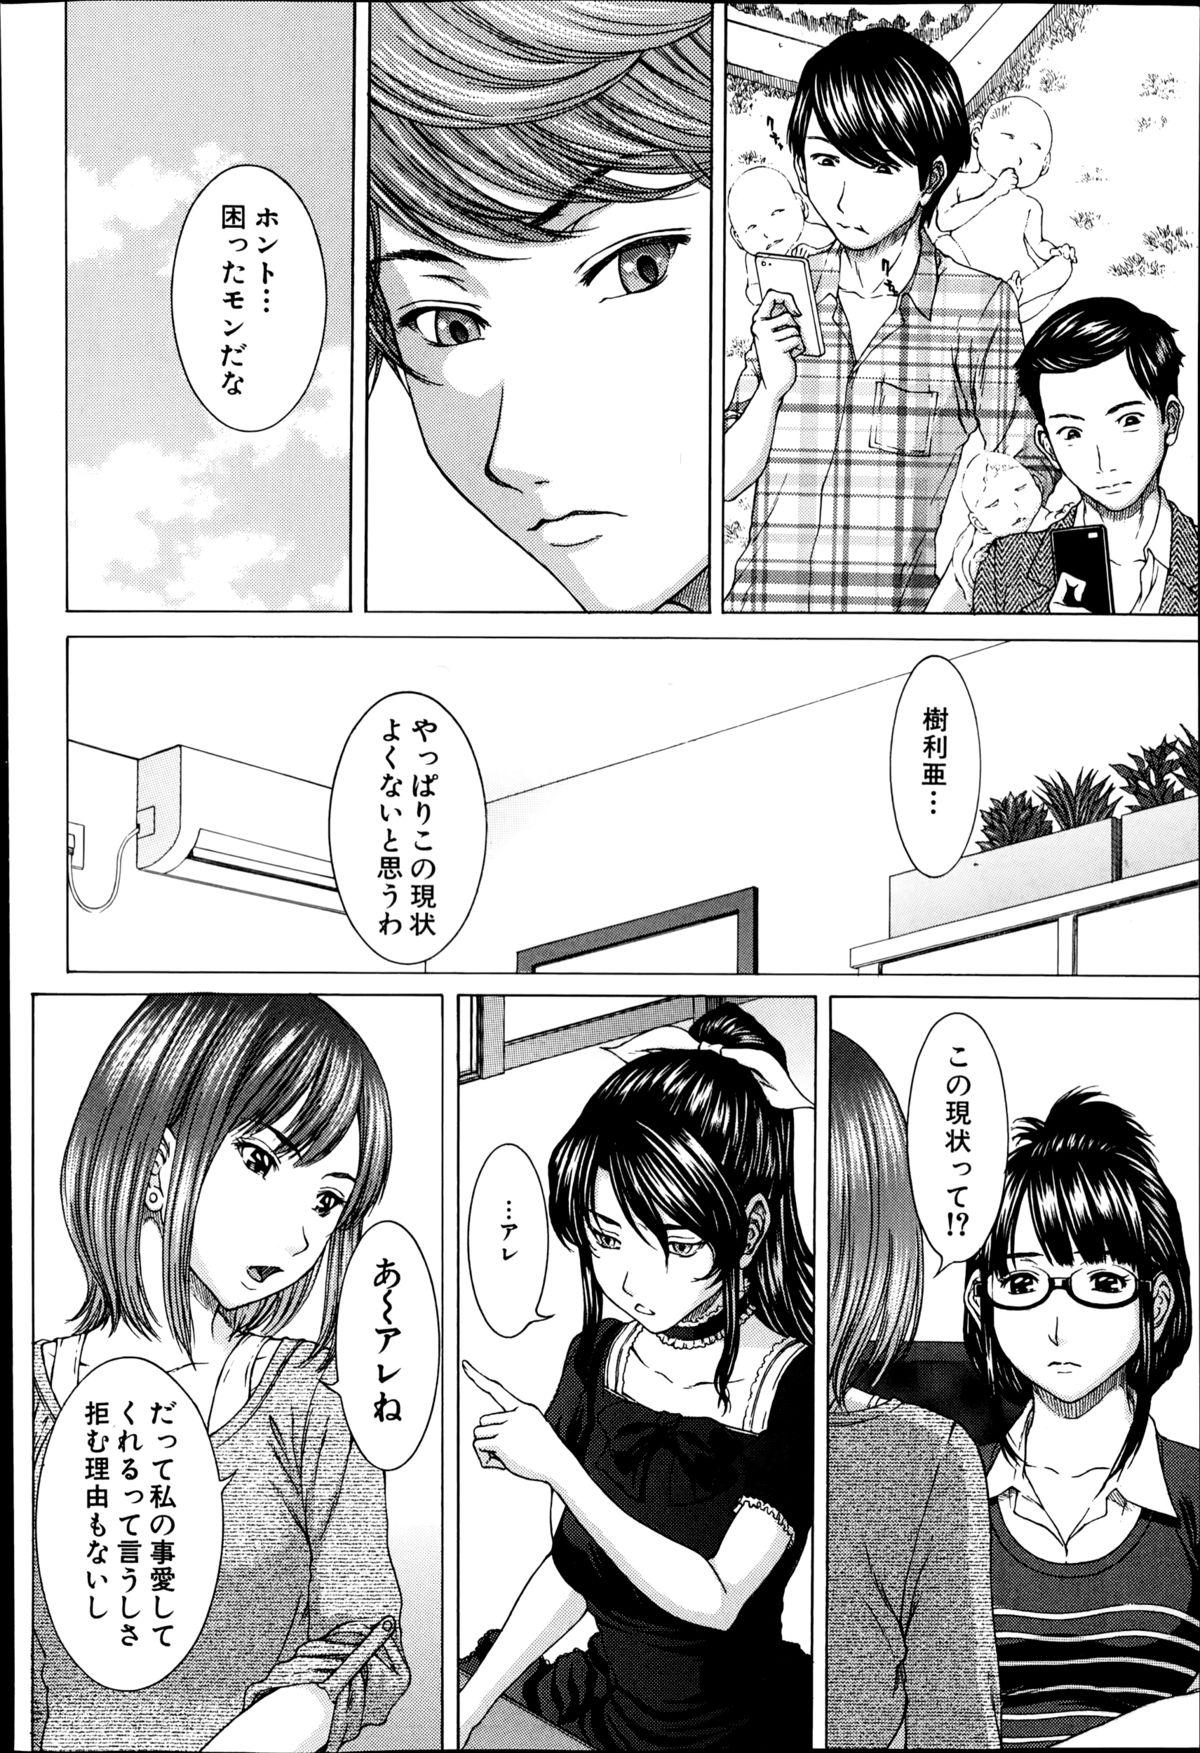 BUSTER COMIC 2014-09 253